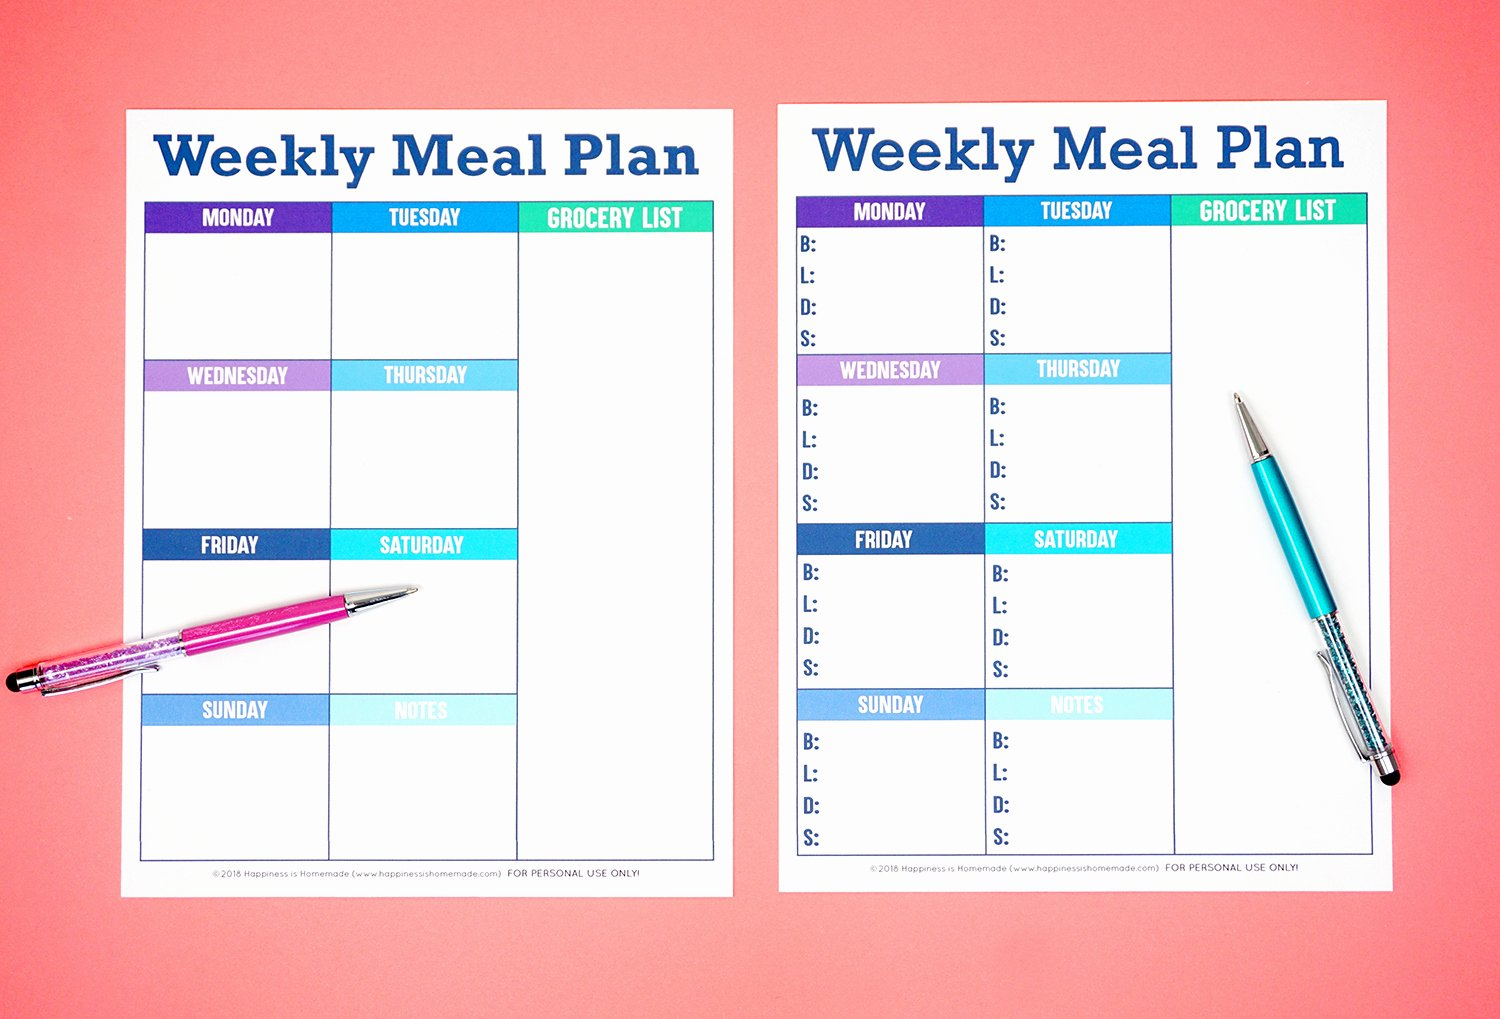 Free Meal Plan Templates Elegant Printable Weekly Meal Planner Template Happiness is Homemade